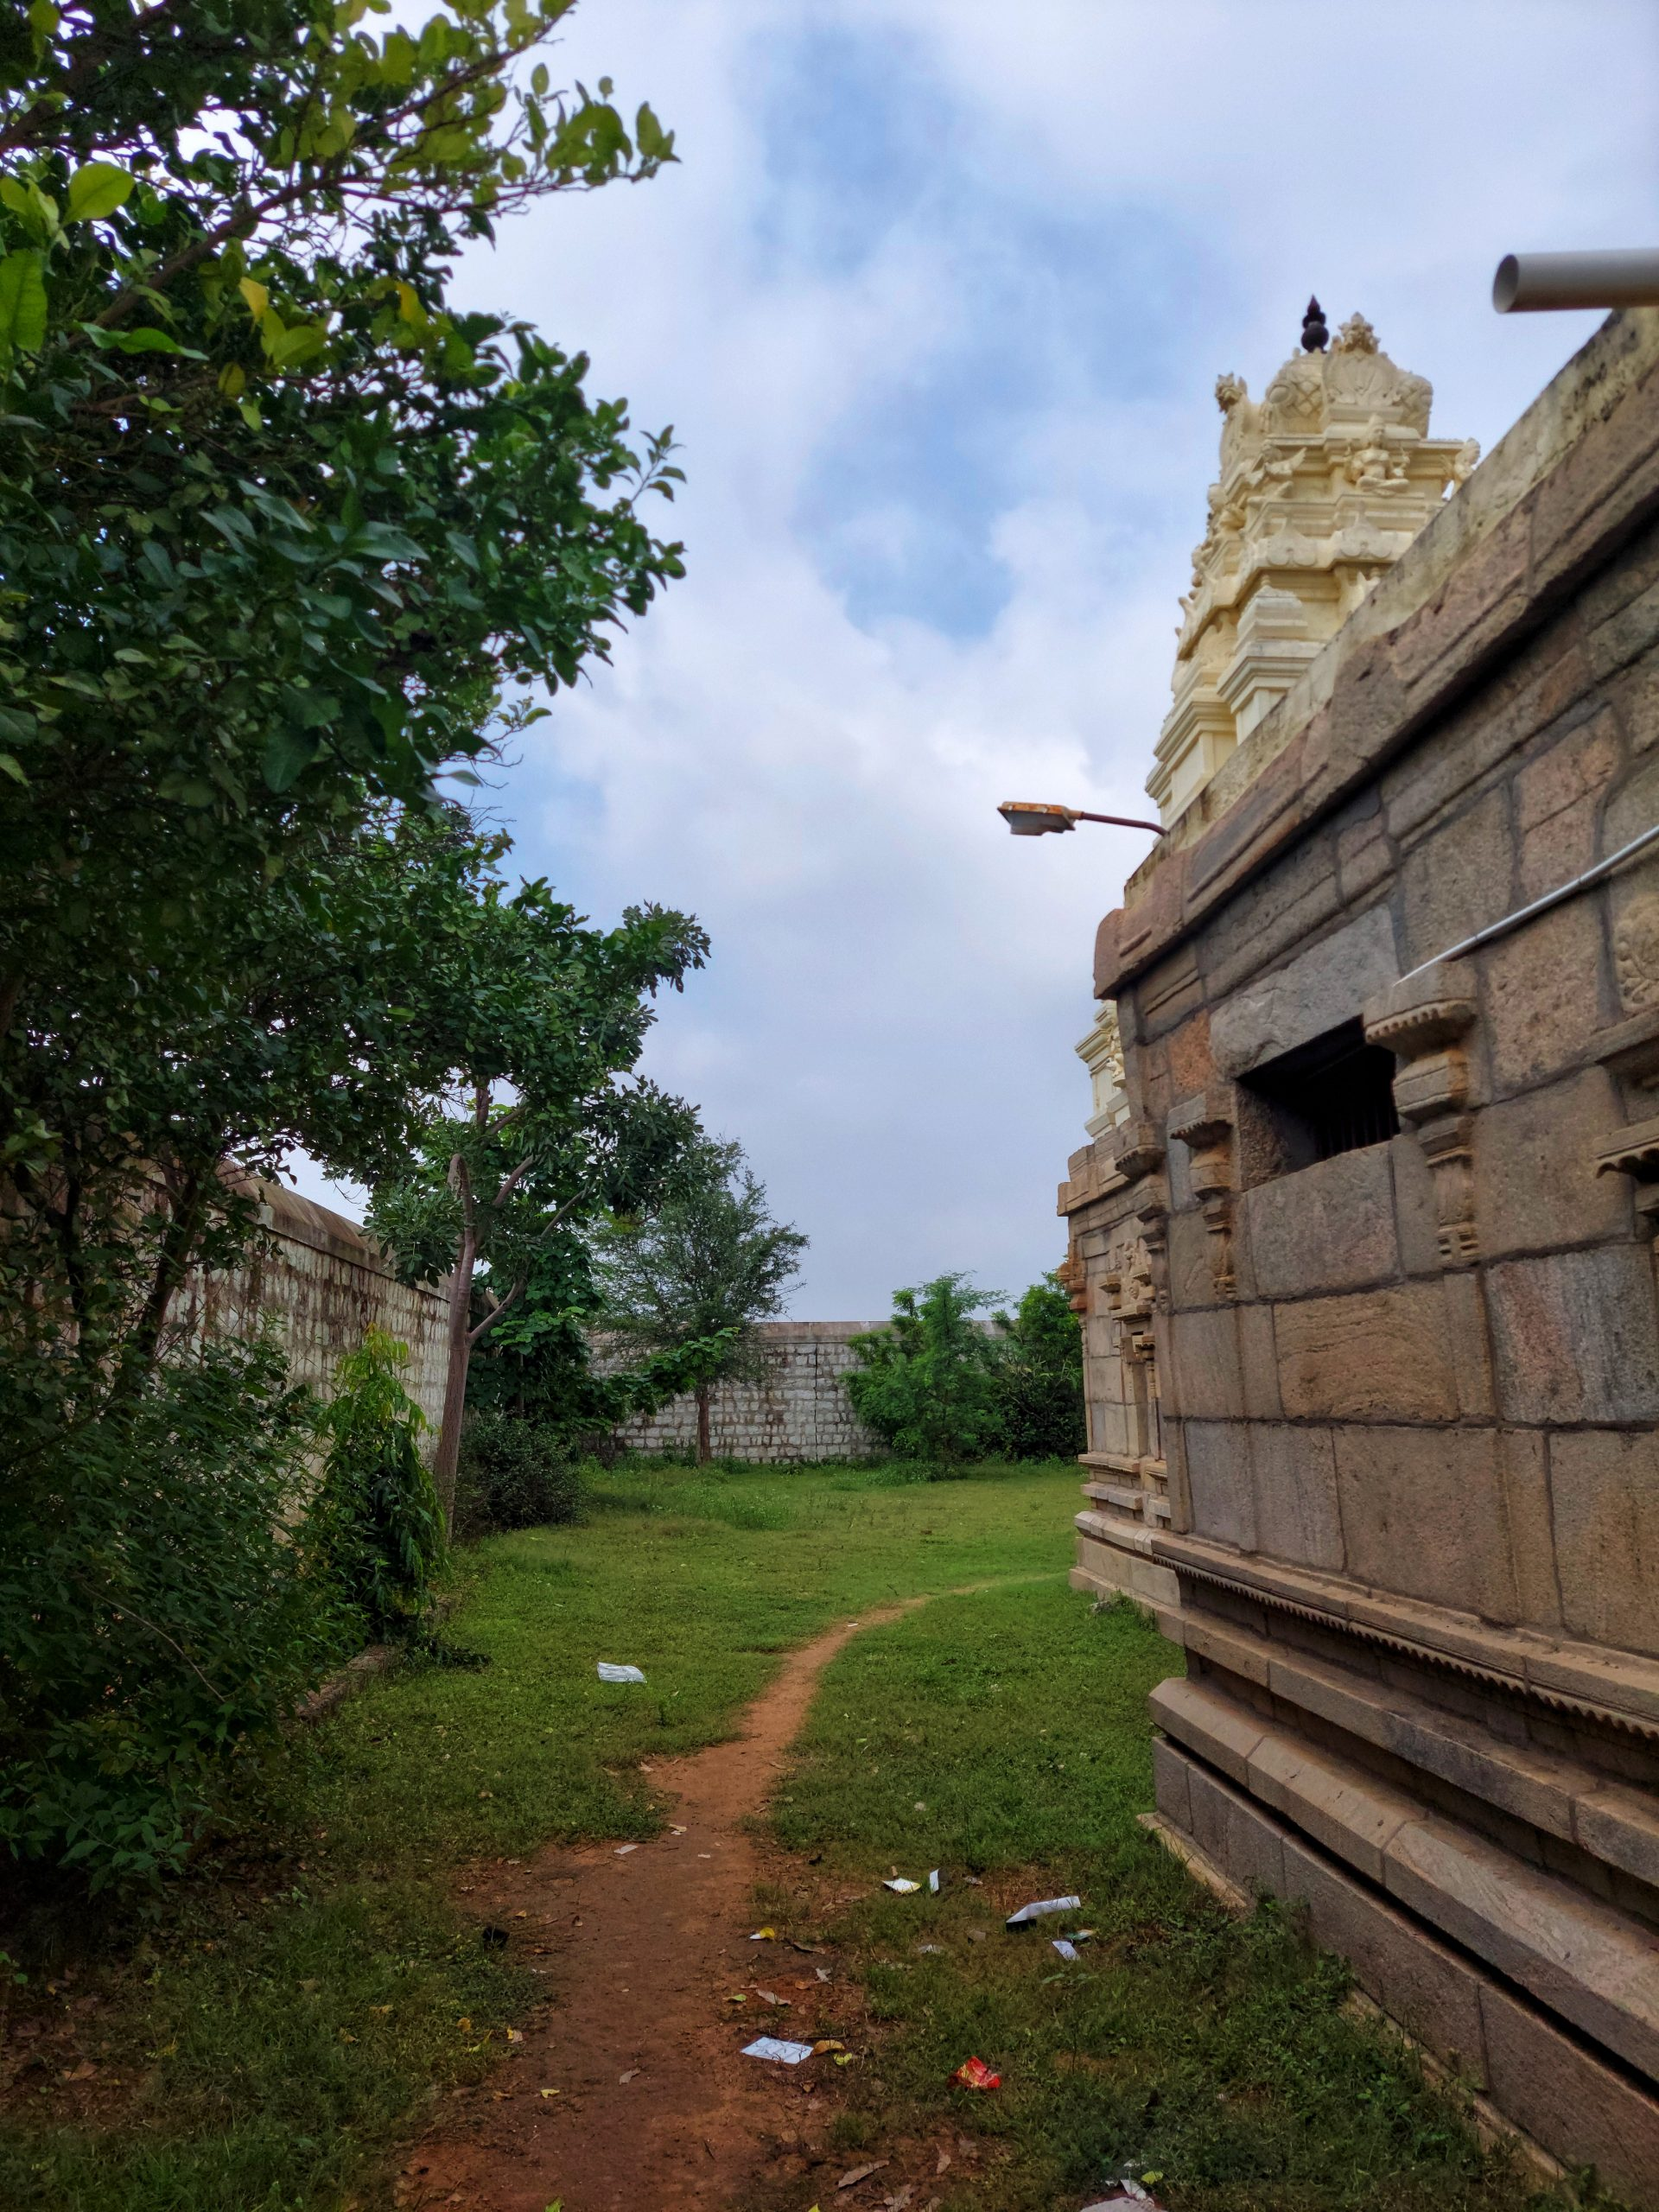 Trail toward hindu temple